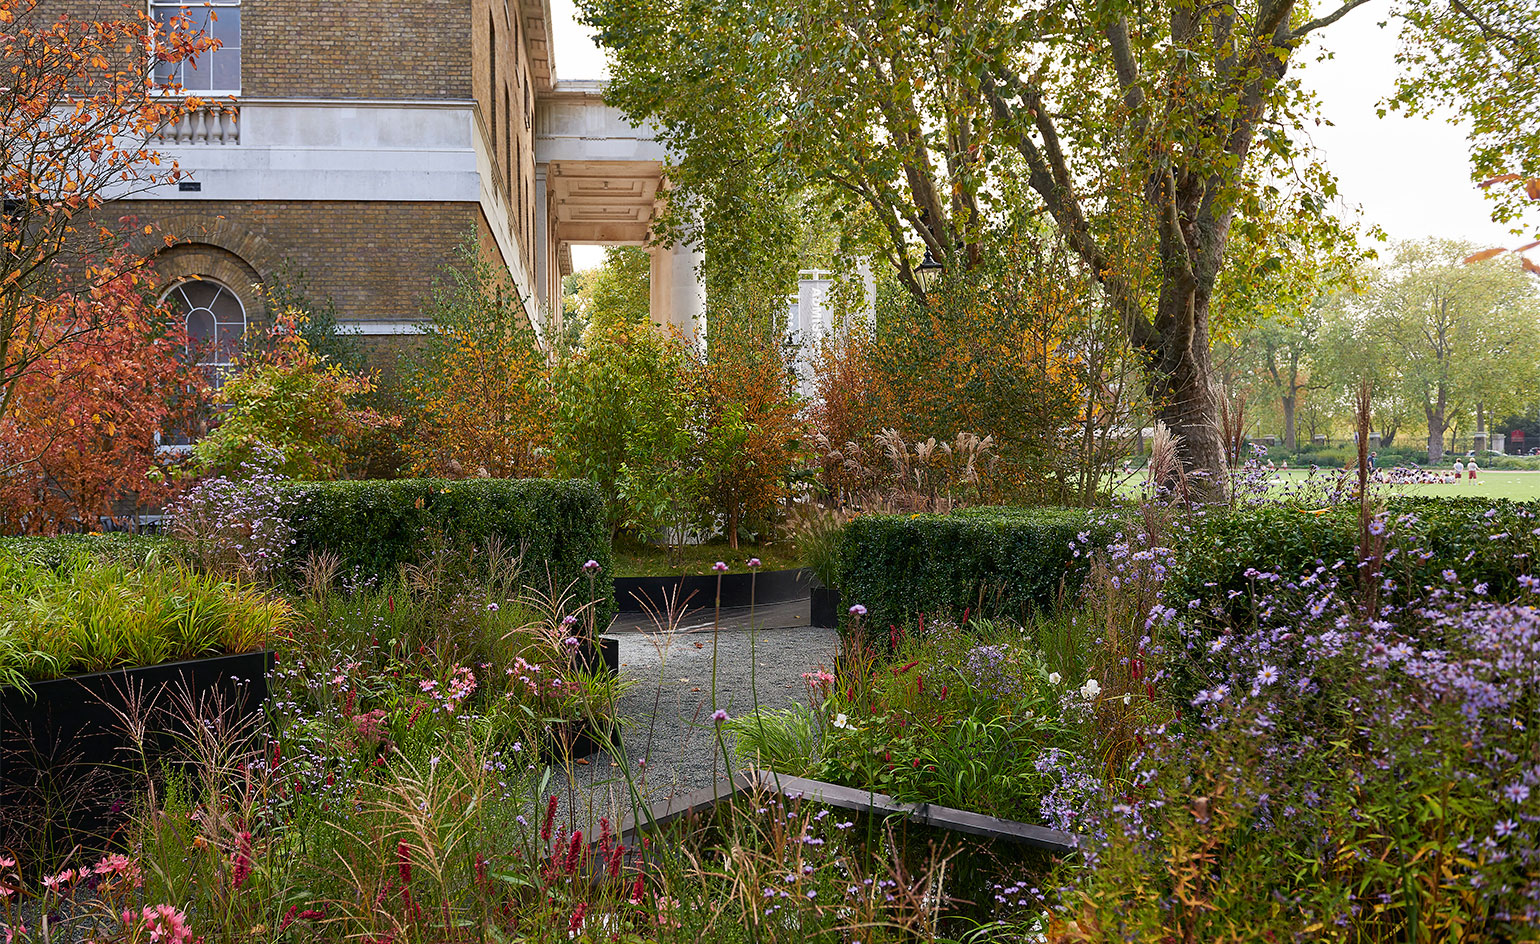 This free of charge exhibition begins just off the King's Road with a contemporary English garden, landscaped by this year's RHS Chelsea Flower Show winners Harry and David Rich.